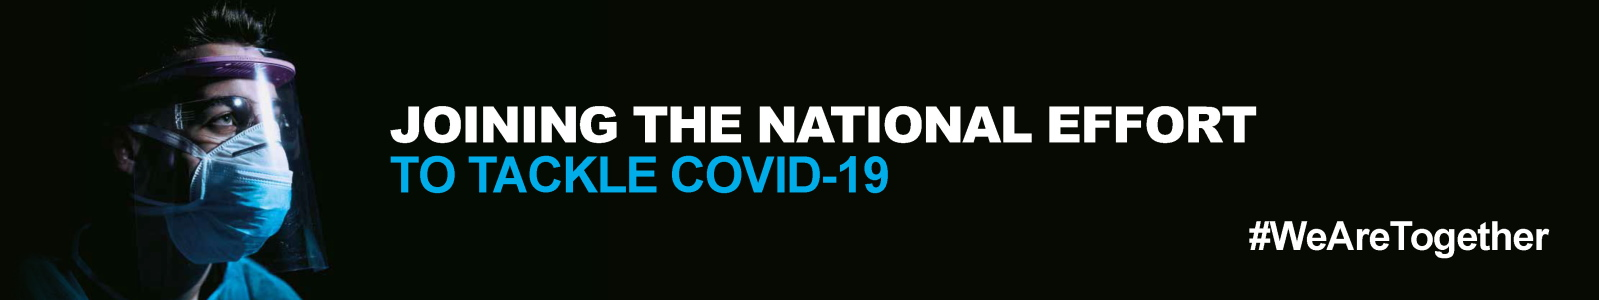 Joining the national effort to tackle Covid-19